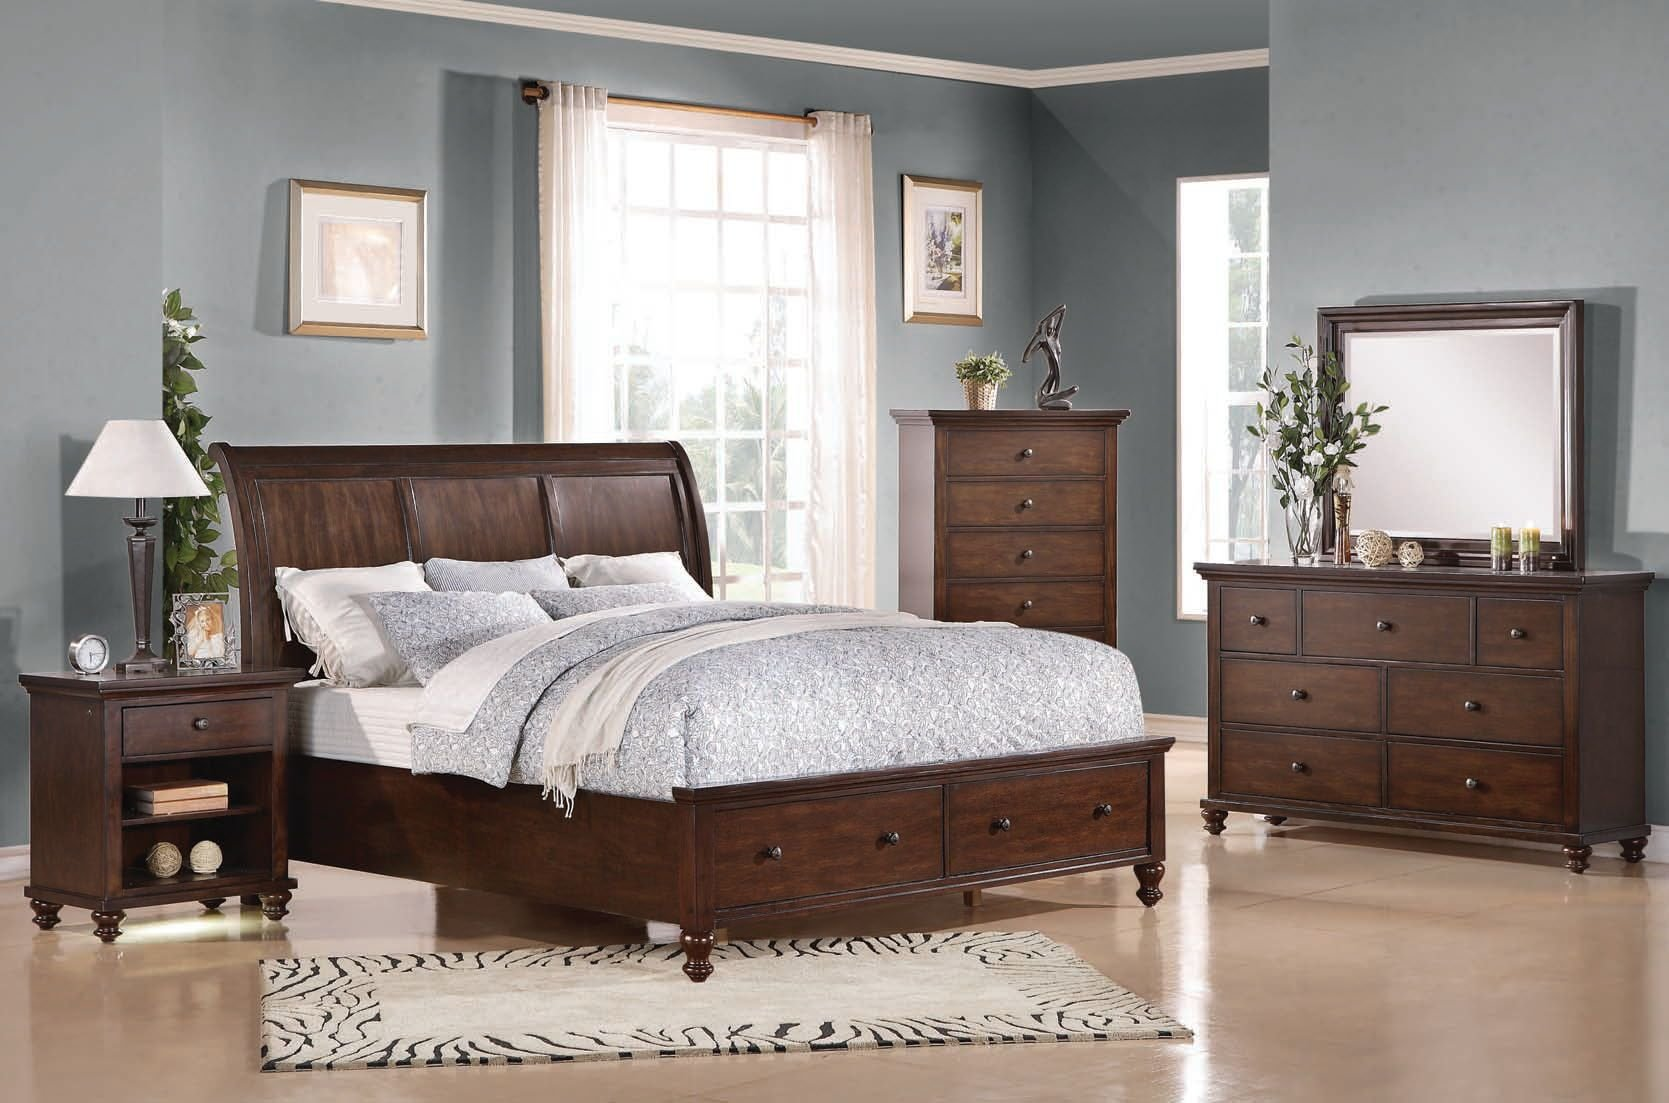 Best Aceline Coastal Brown Cherry Wood Master Bedroom Set The With Pictures